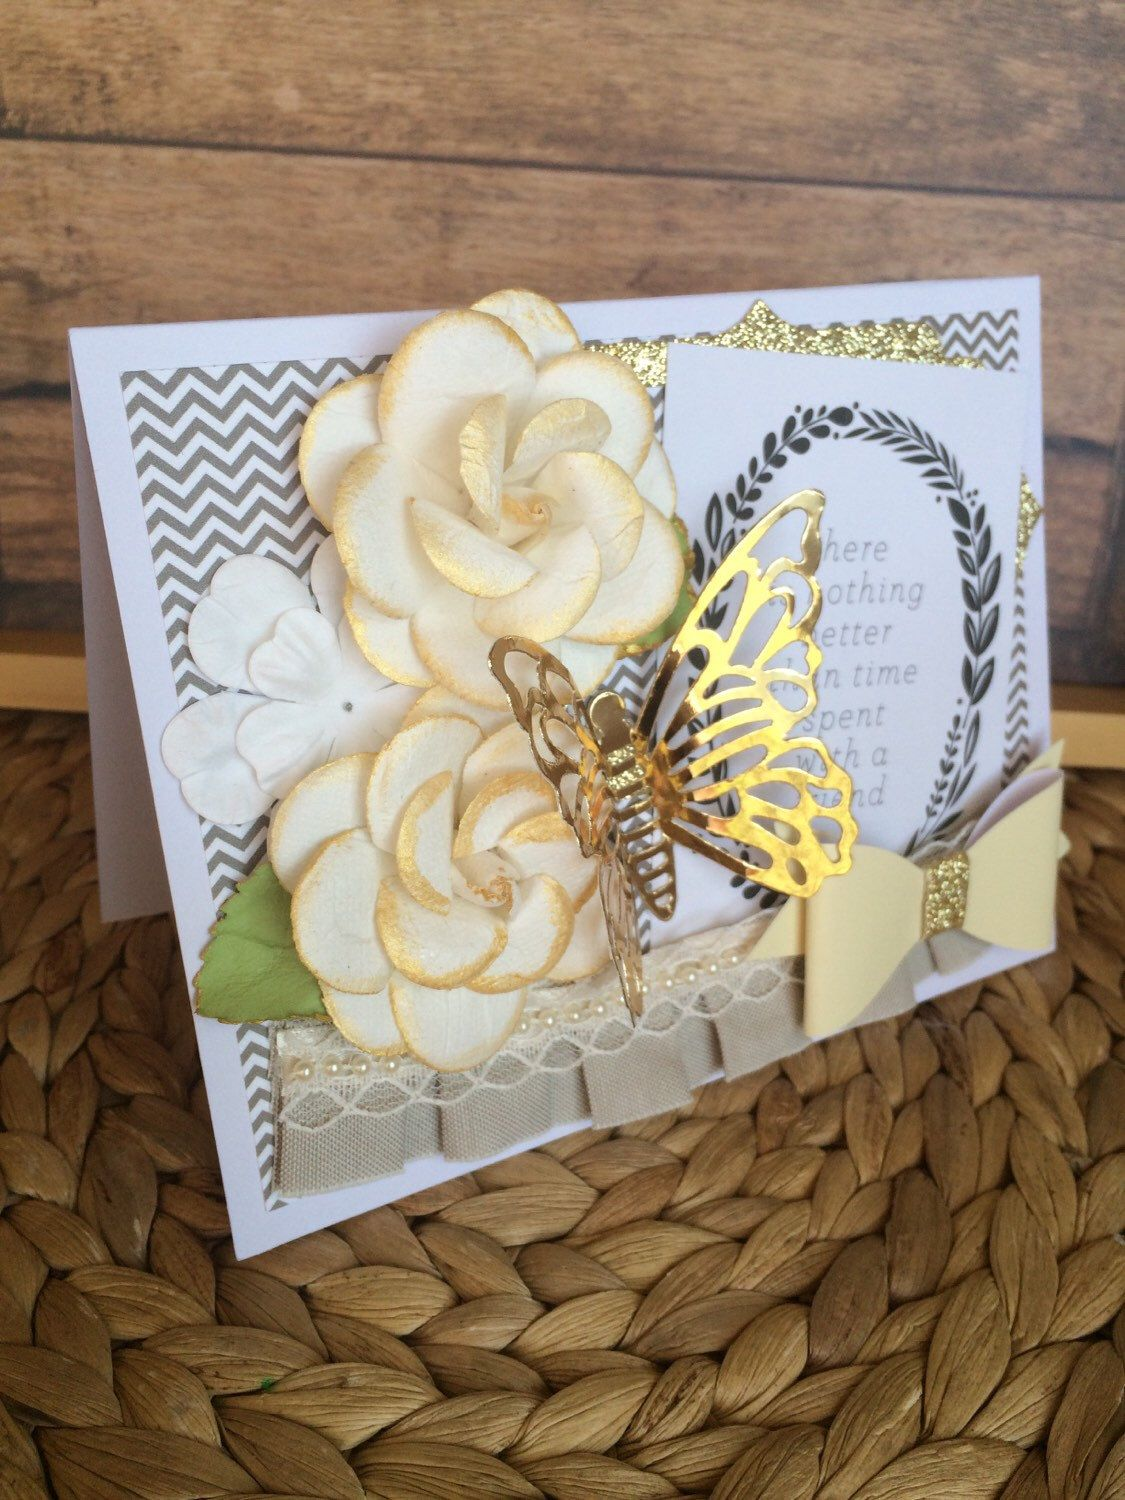 Friend Card Handmadehandcrafted Greeting Card Luxury Greeting